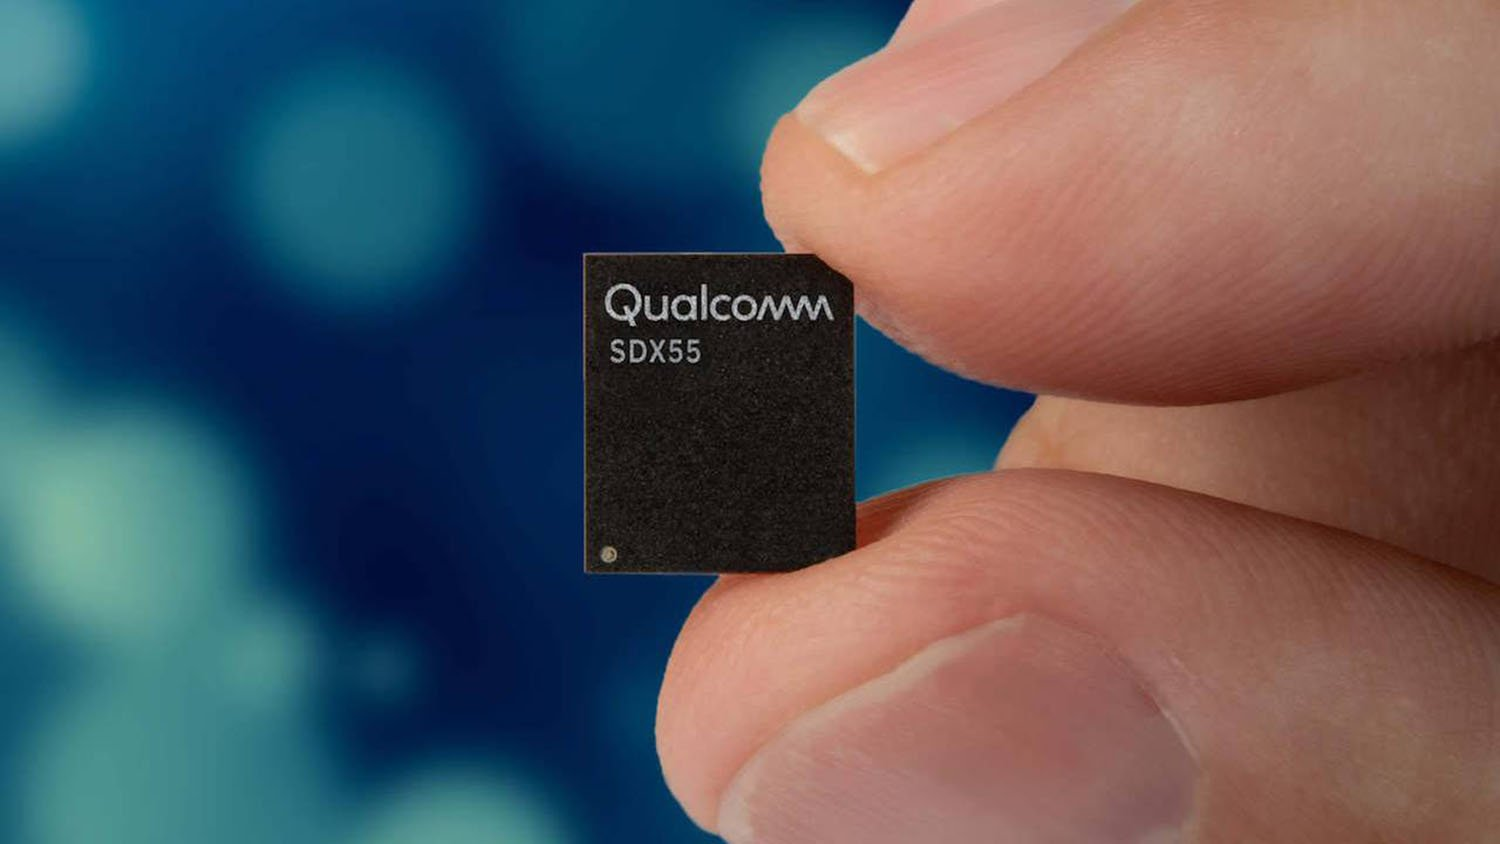 Apple to use Qualcomm 5G modems in future products, including X60 in 2021